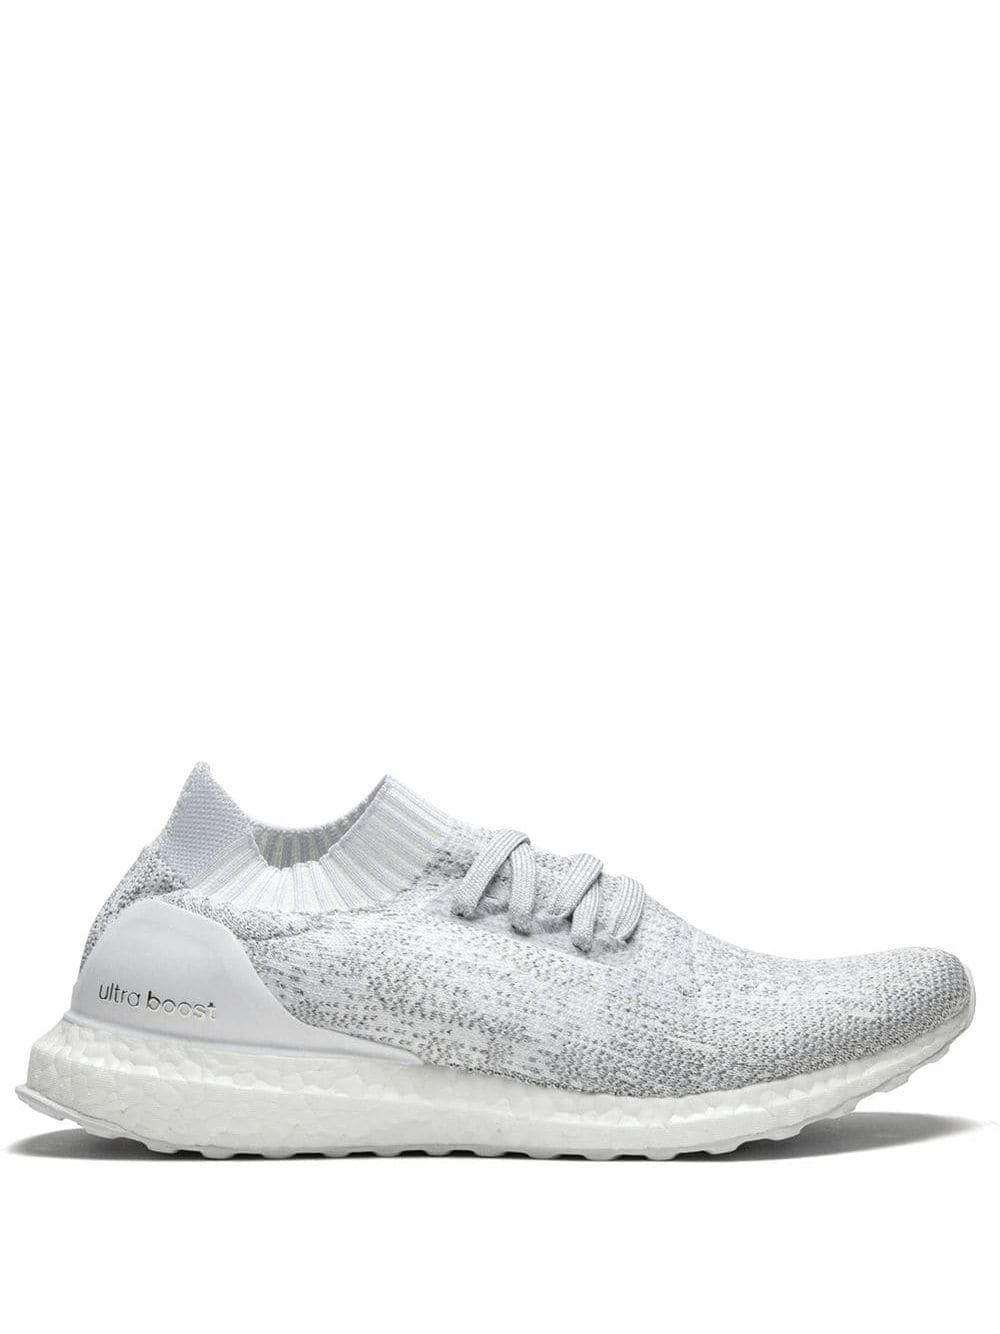 Adidas UltraBoost Uncaged LTD Sneakers in 2020 | Ultraboost